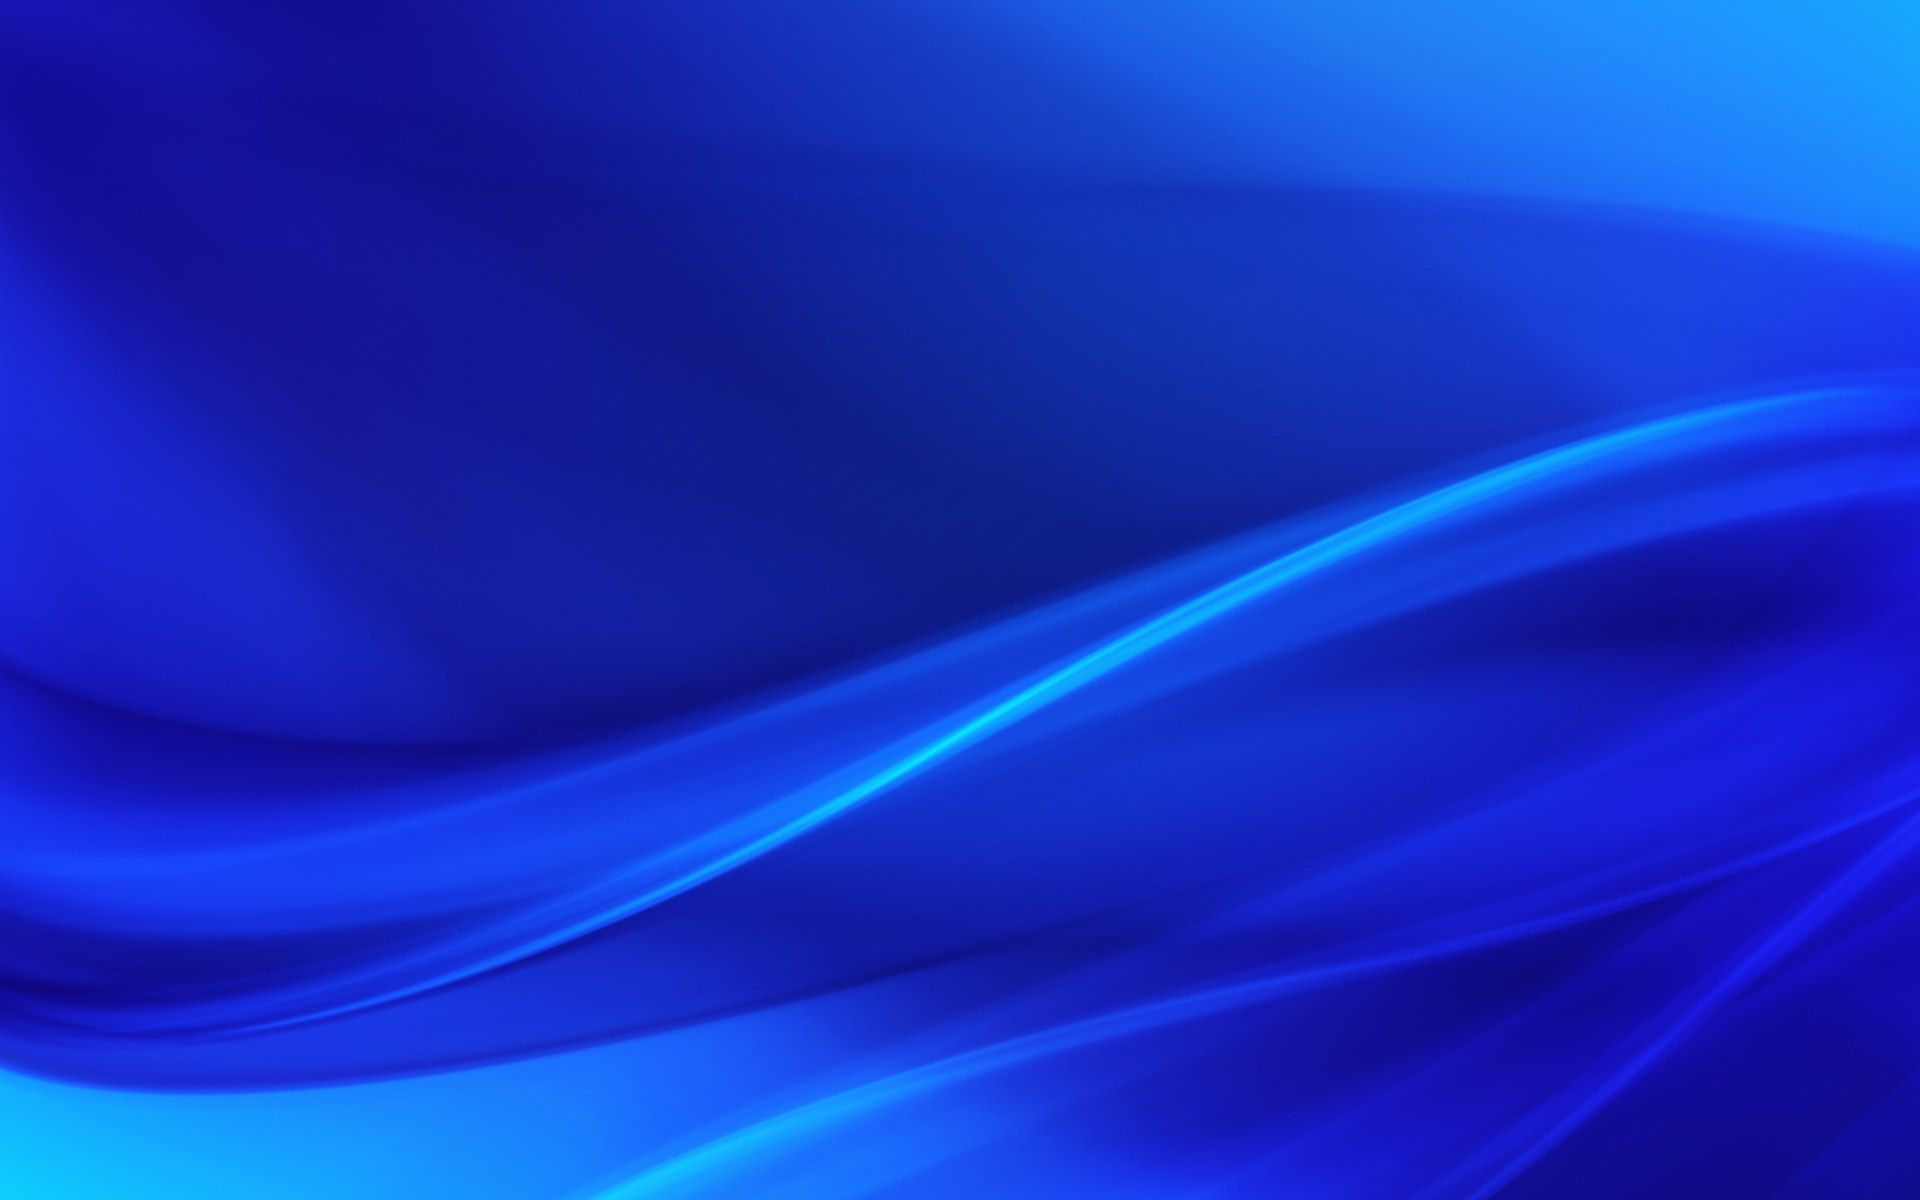 hd wallpapers abstract blue backgrounds 34 | backgrounds, wallpapers